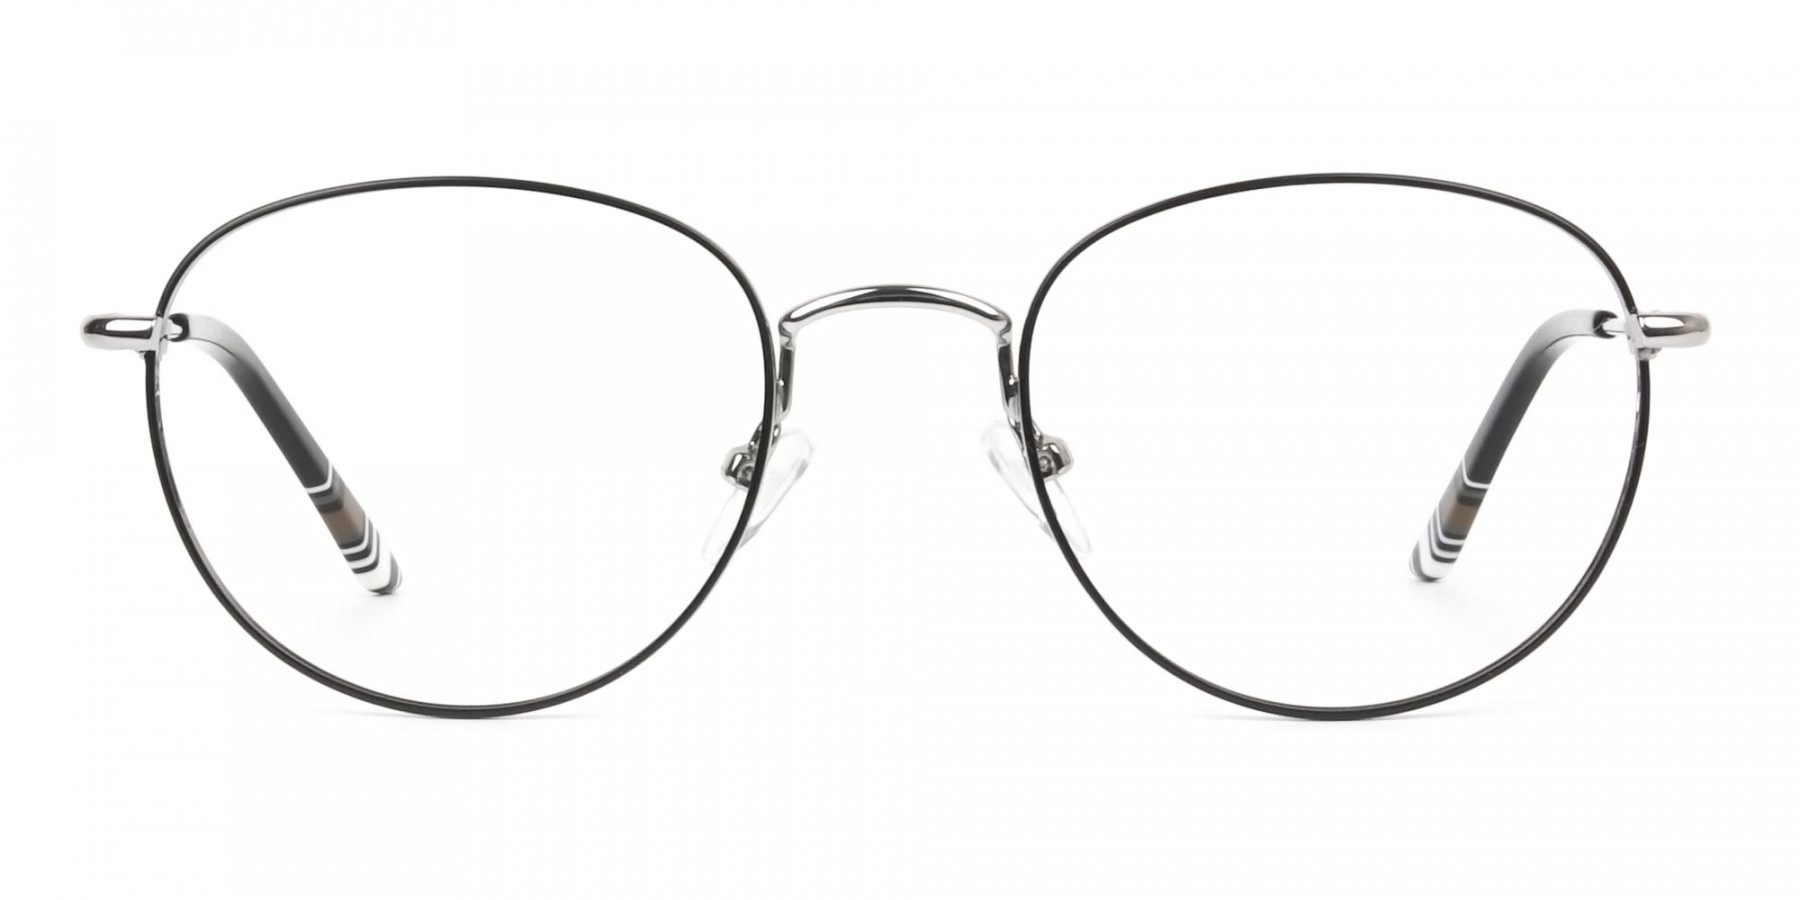 Lightweight Black & Silver Round Spectacles  - 1